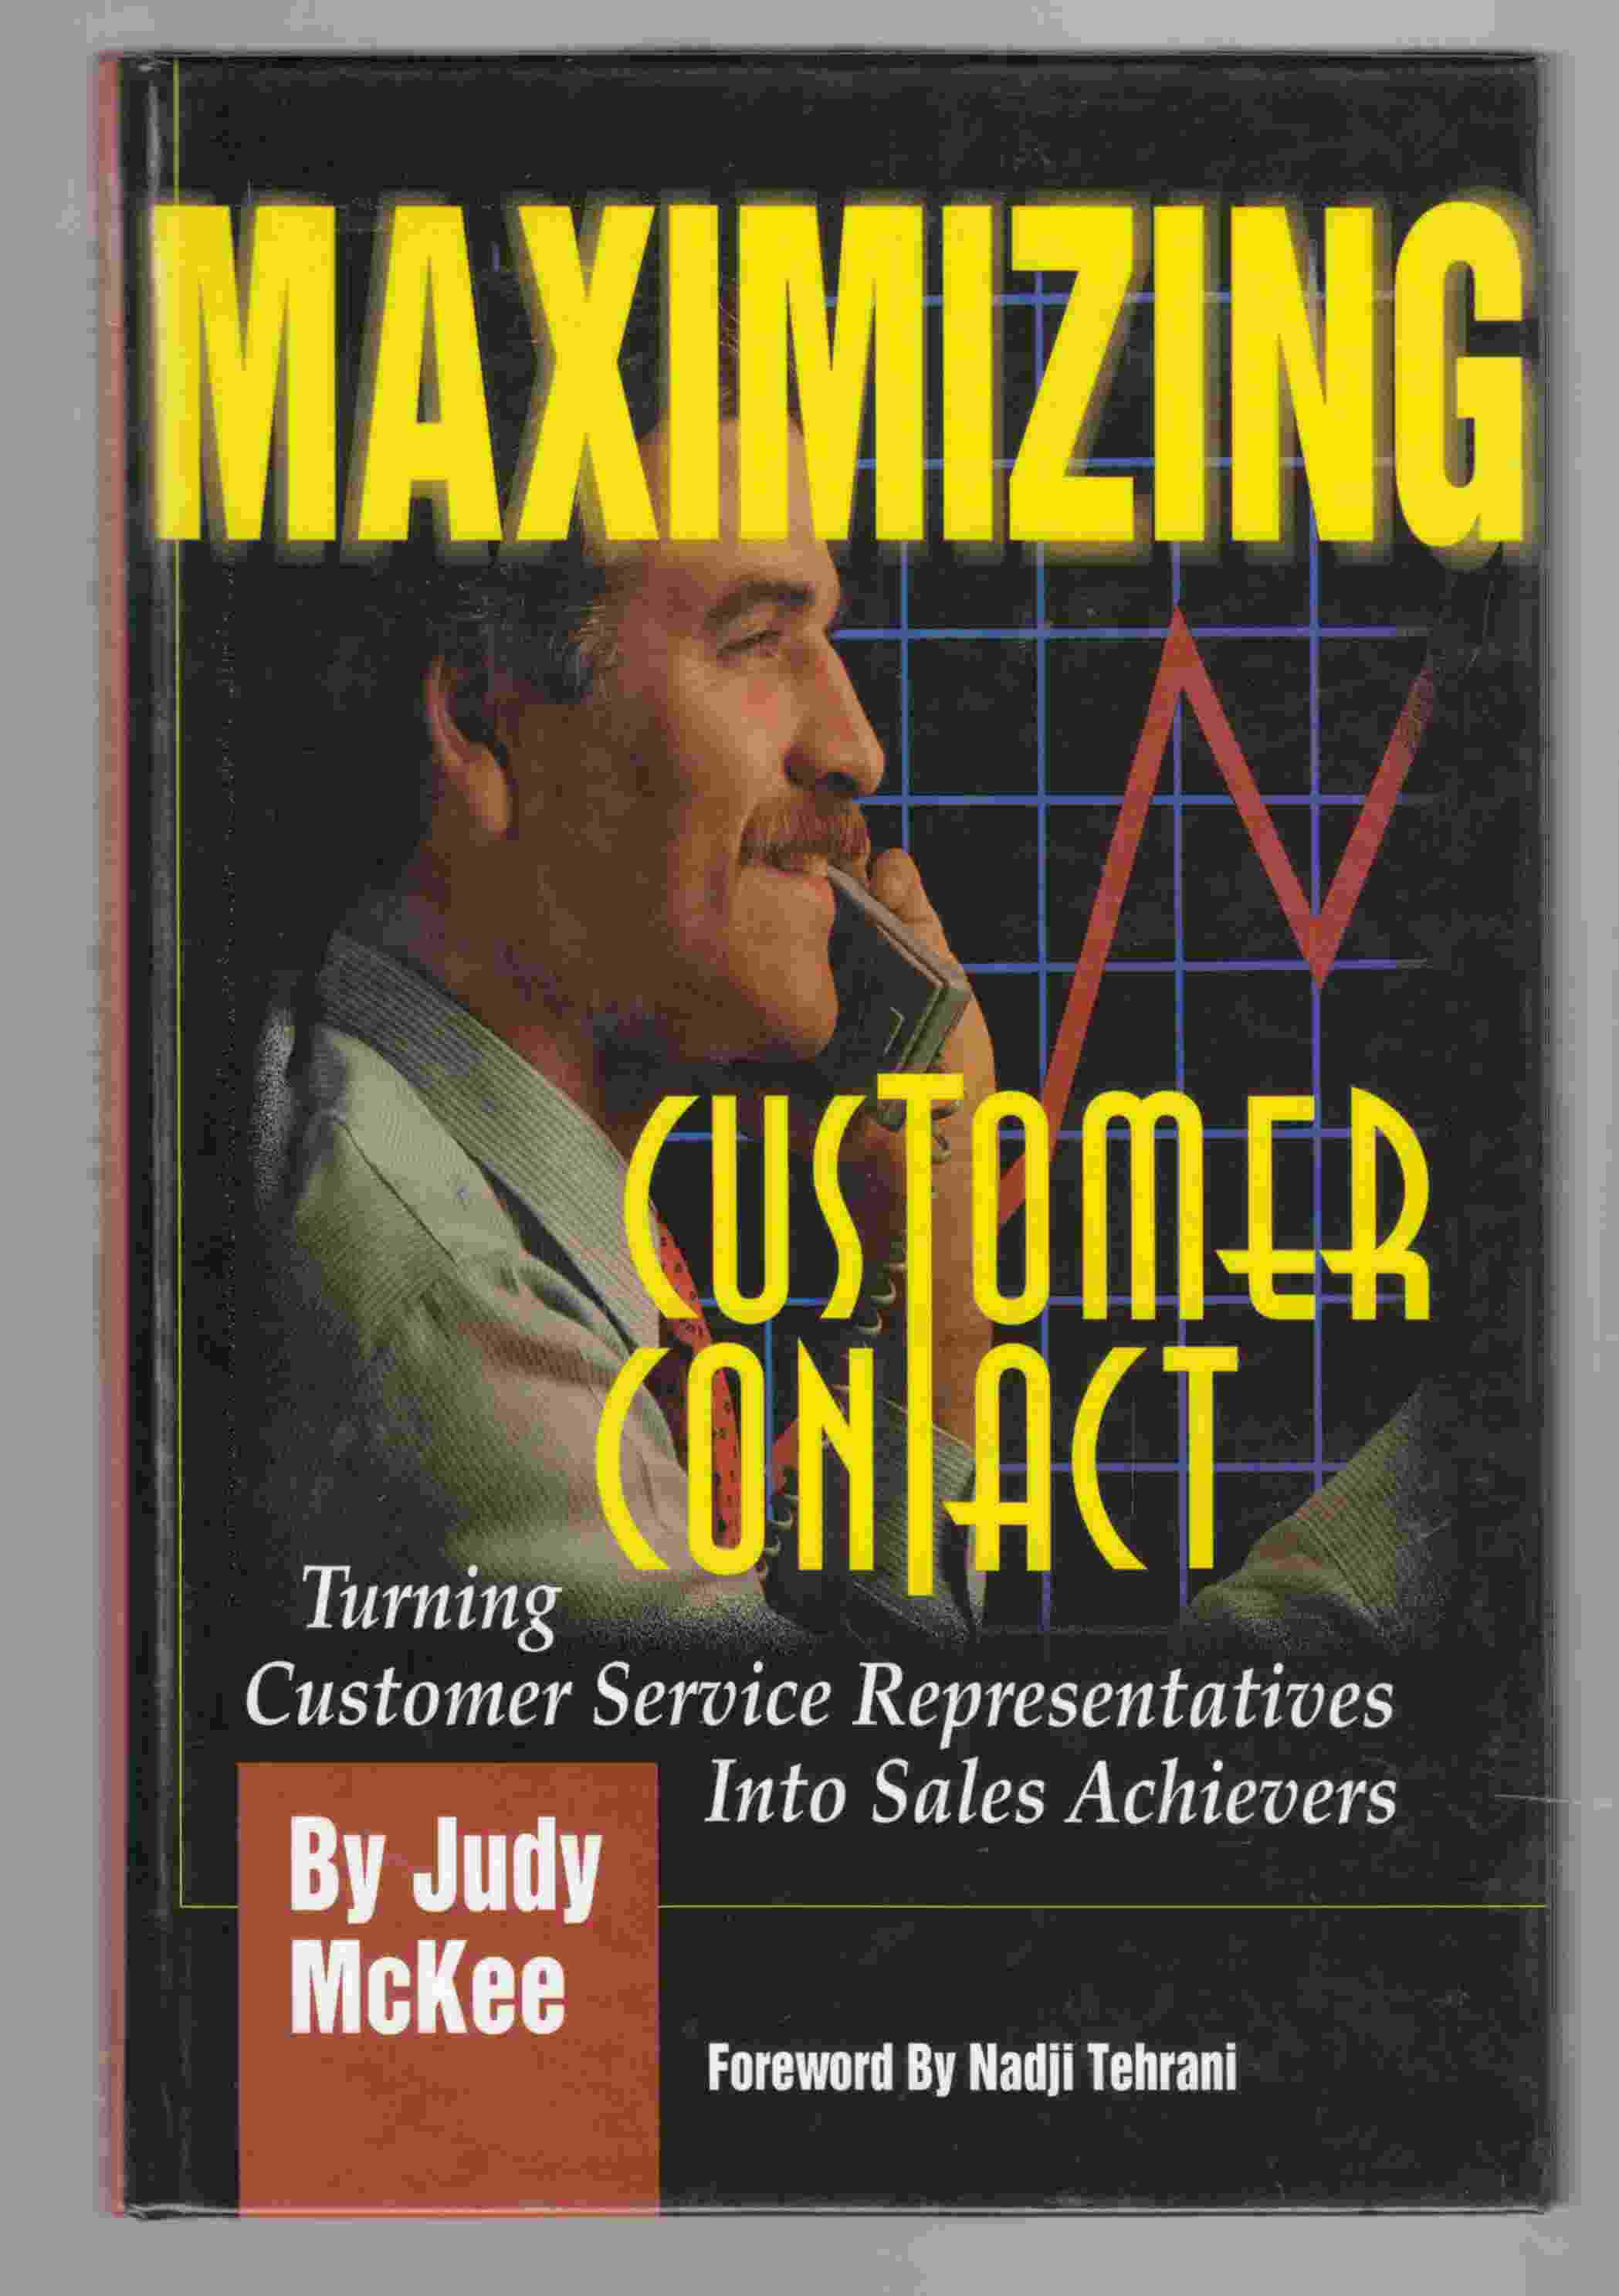 Image for Maximizing Customer Contact: Turning Customer Service Representatives Into Sales Achievers